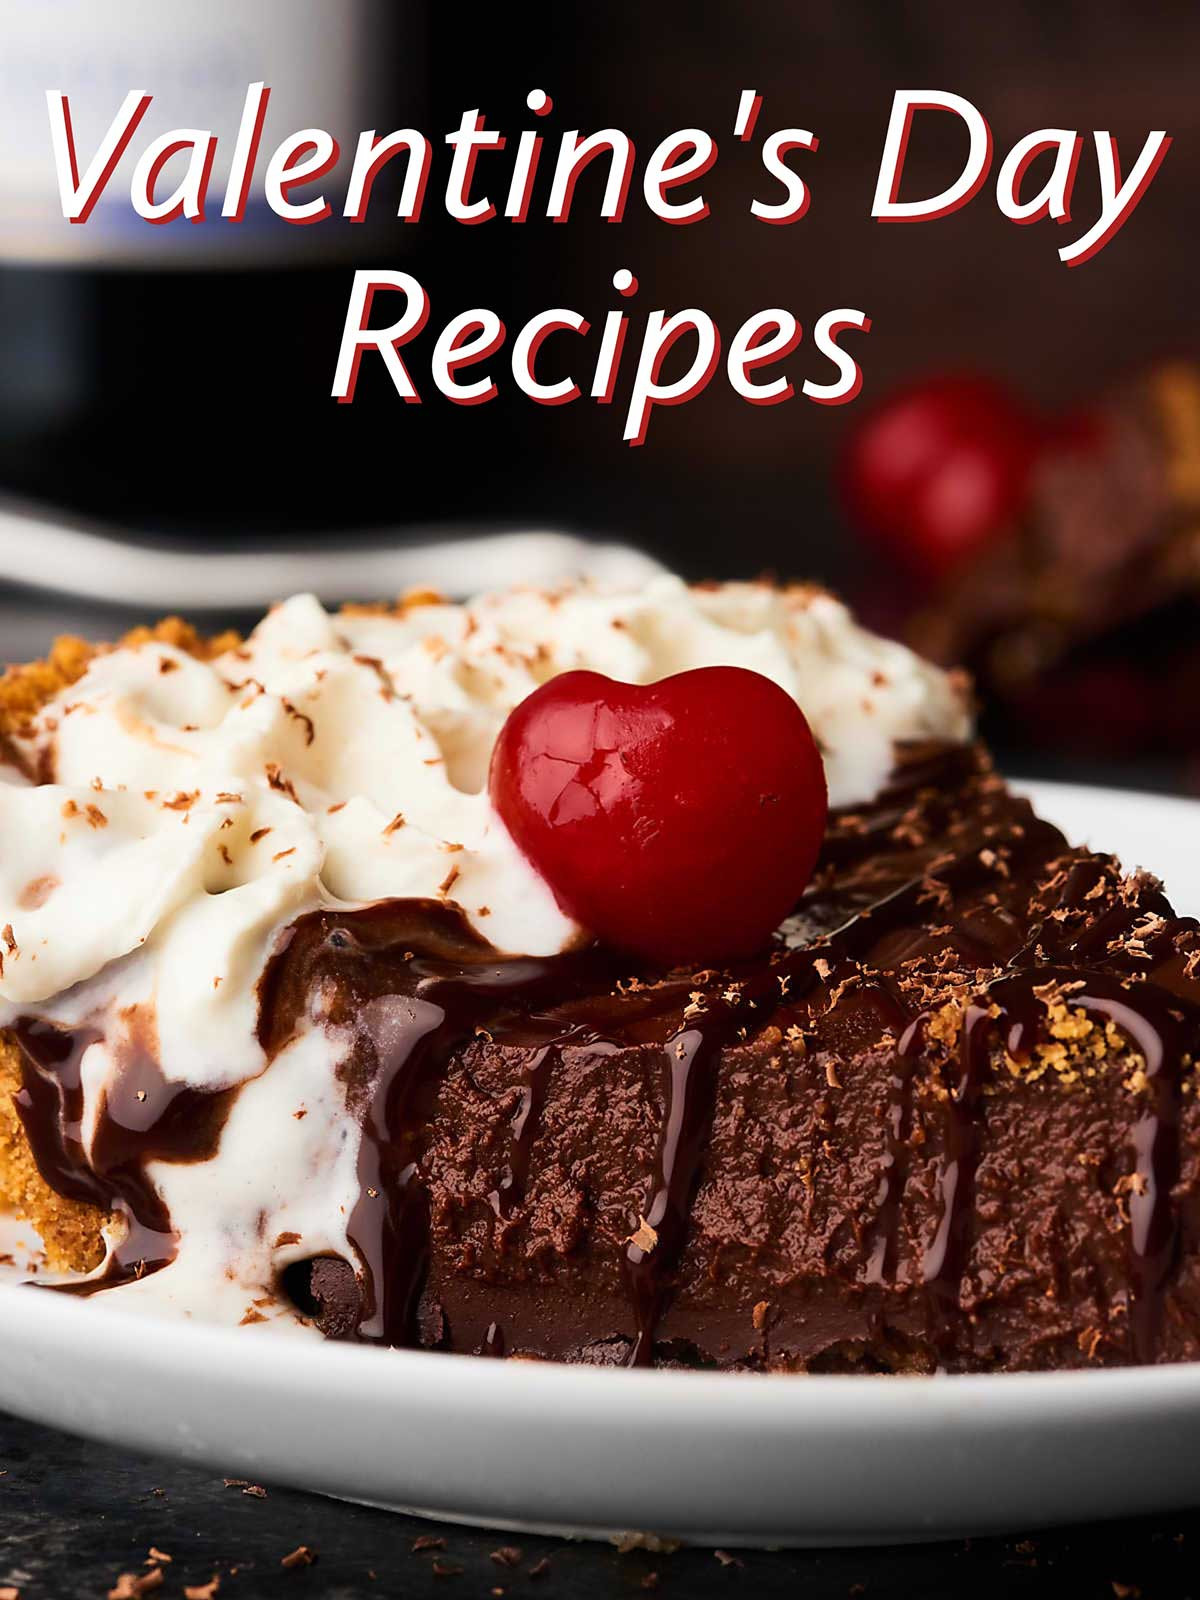 Easy Valentine'S Day Desserts  Easy Valentine s Day Recipes 2017 Show Me the Yummy